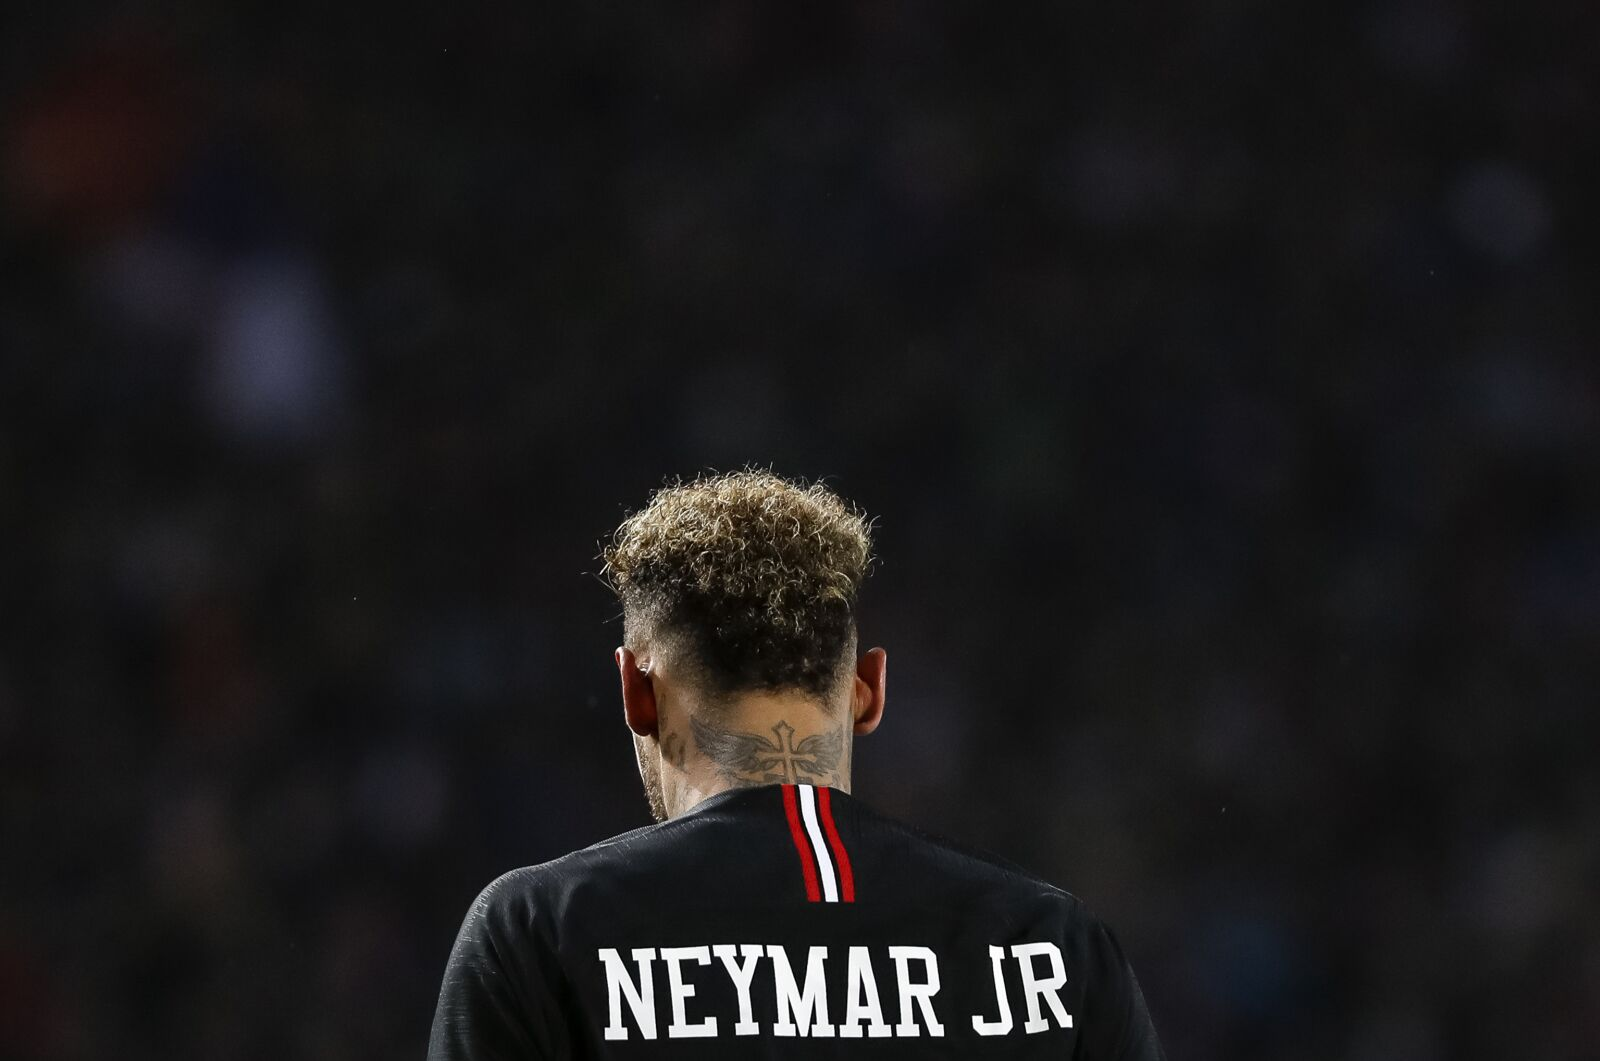 PSG will lose Neymar to Barcelona after personal terms agreed with player